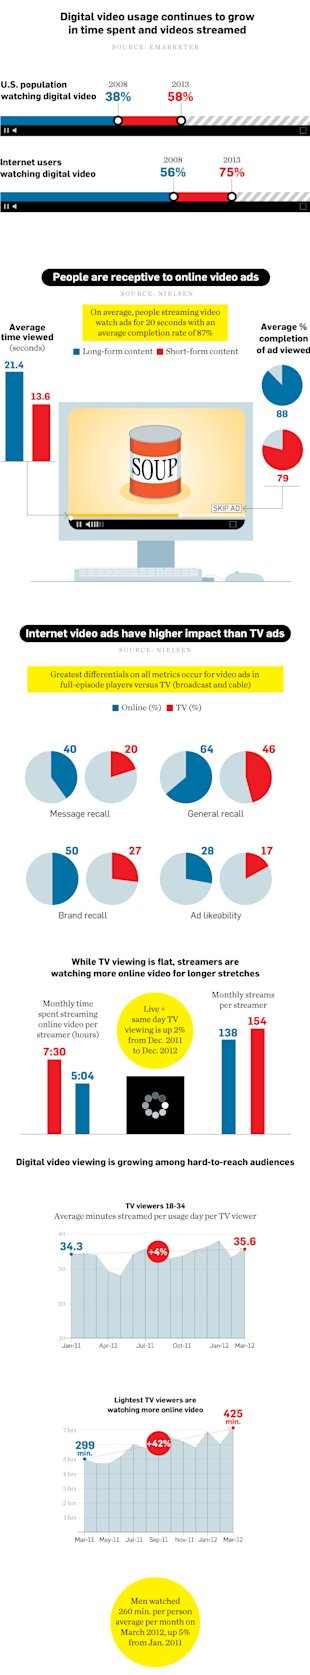 Online Video Has Higher Impact Than Television Advertising (Infographic) image data online video 01 2013